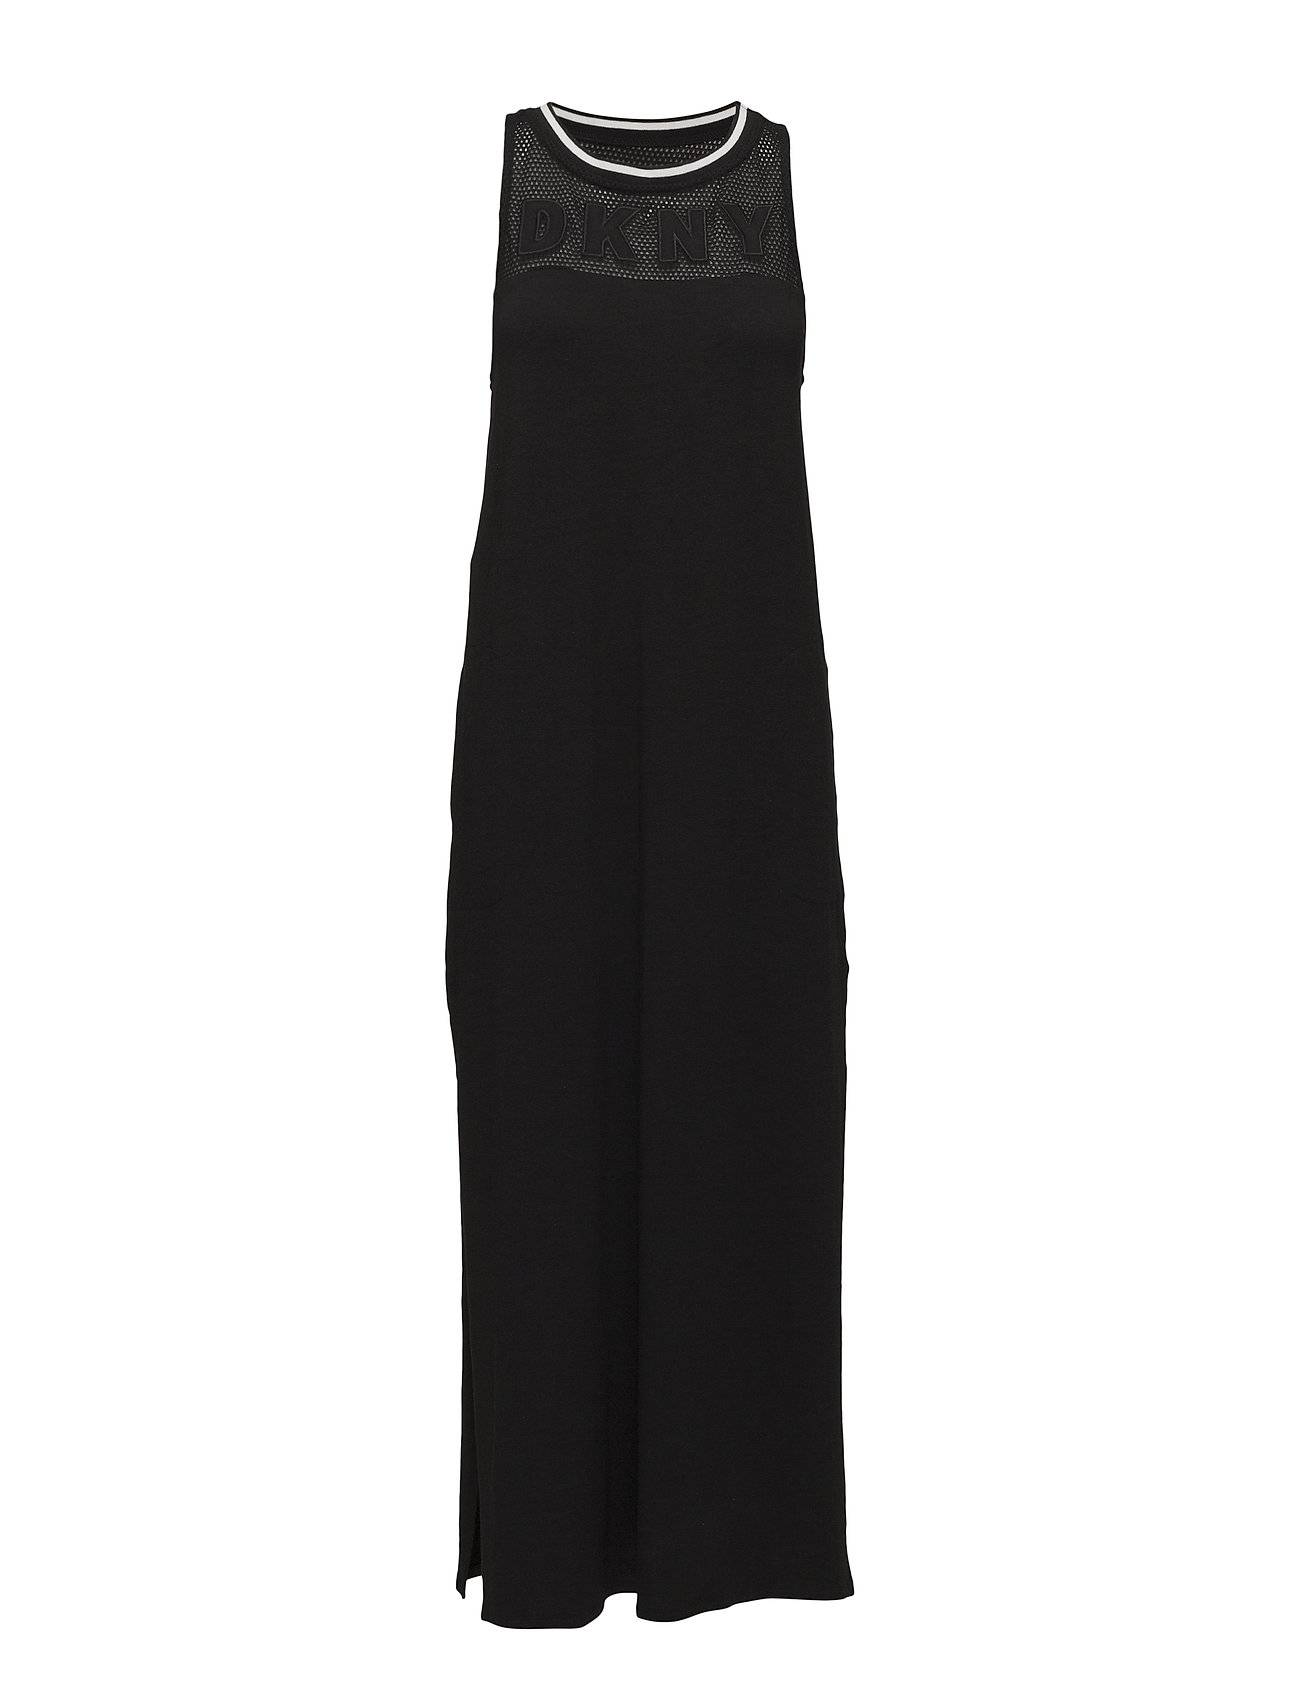 DKNY Homewear Dkny Spell It Out Max Chemise 127 Cm